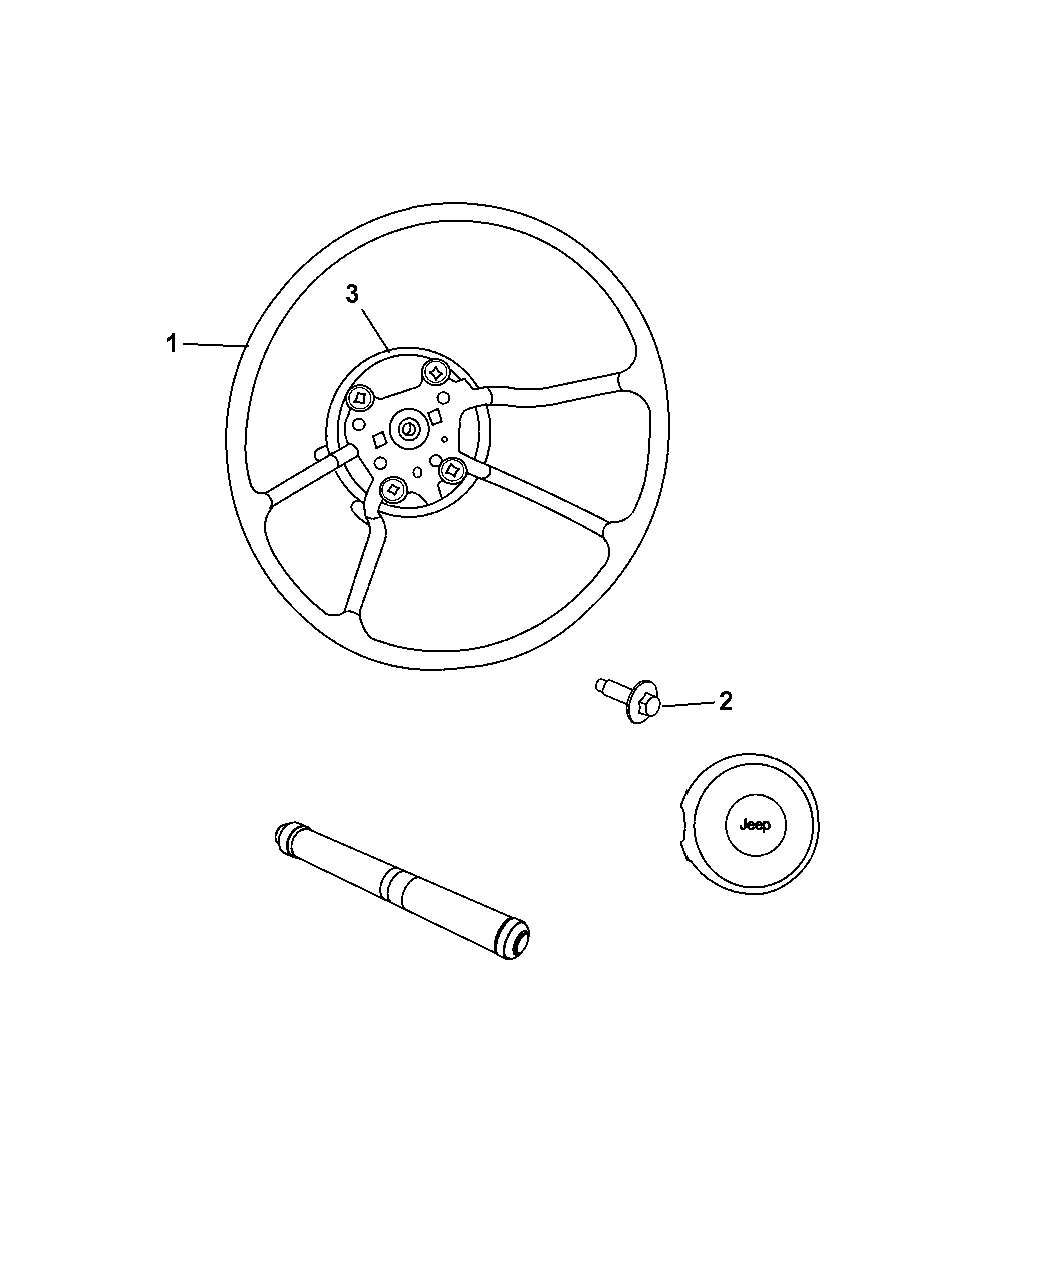 Jeep Wrangler Steering Wheel Assembly